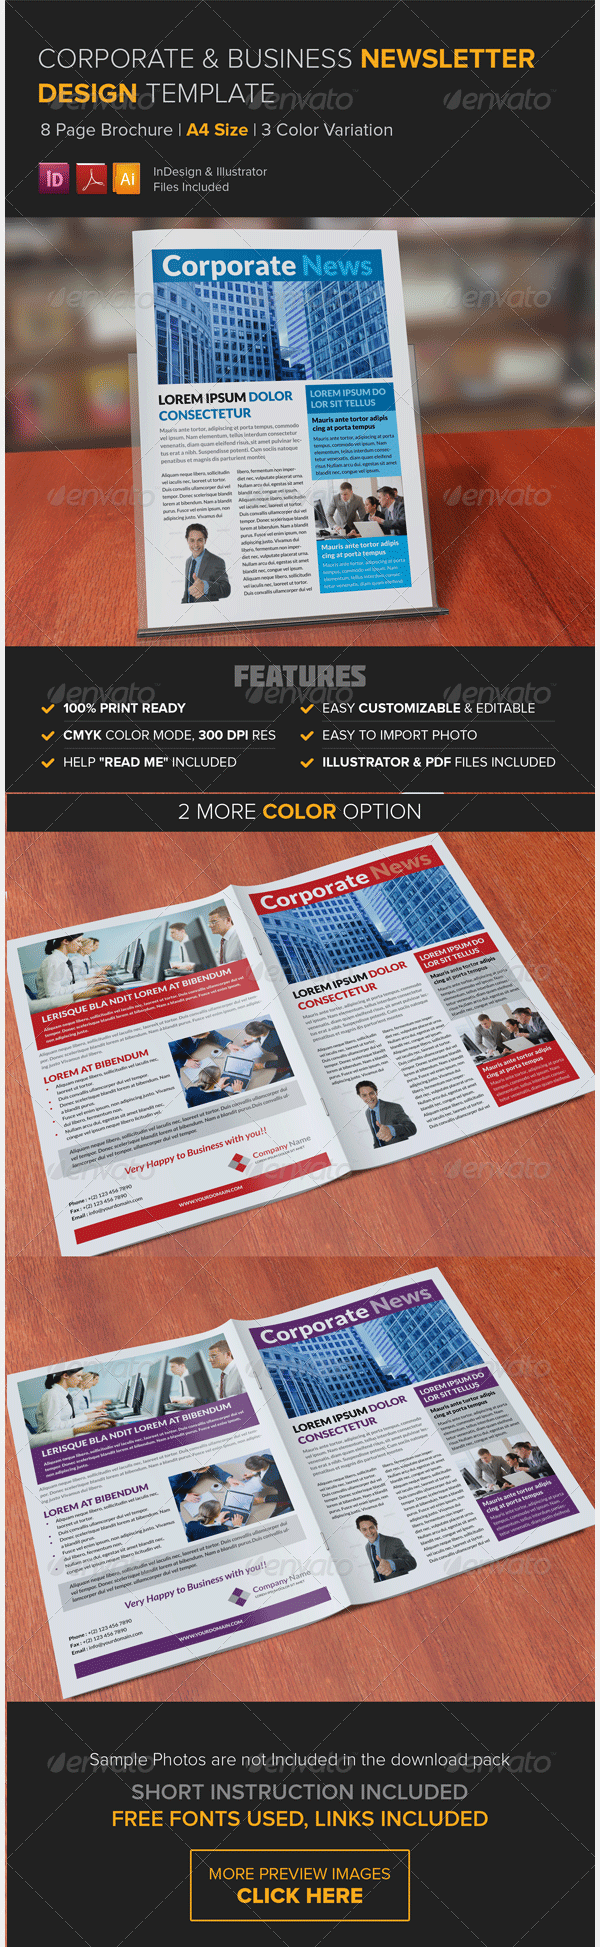 corporate multipurpose newsletter template